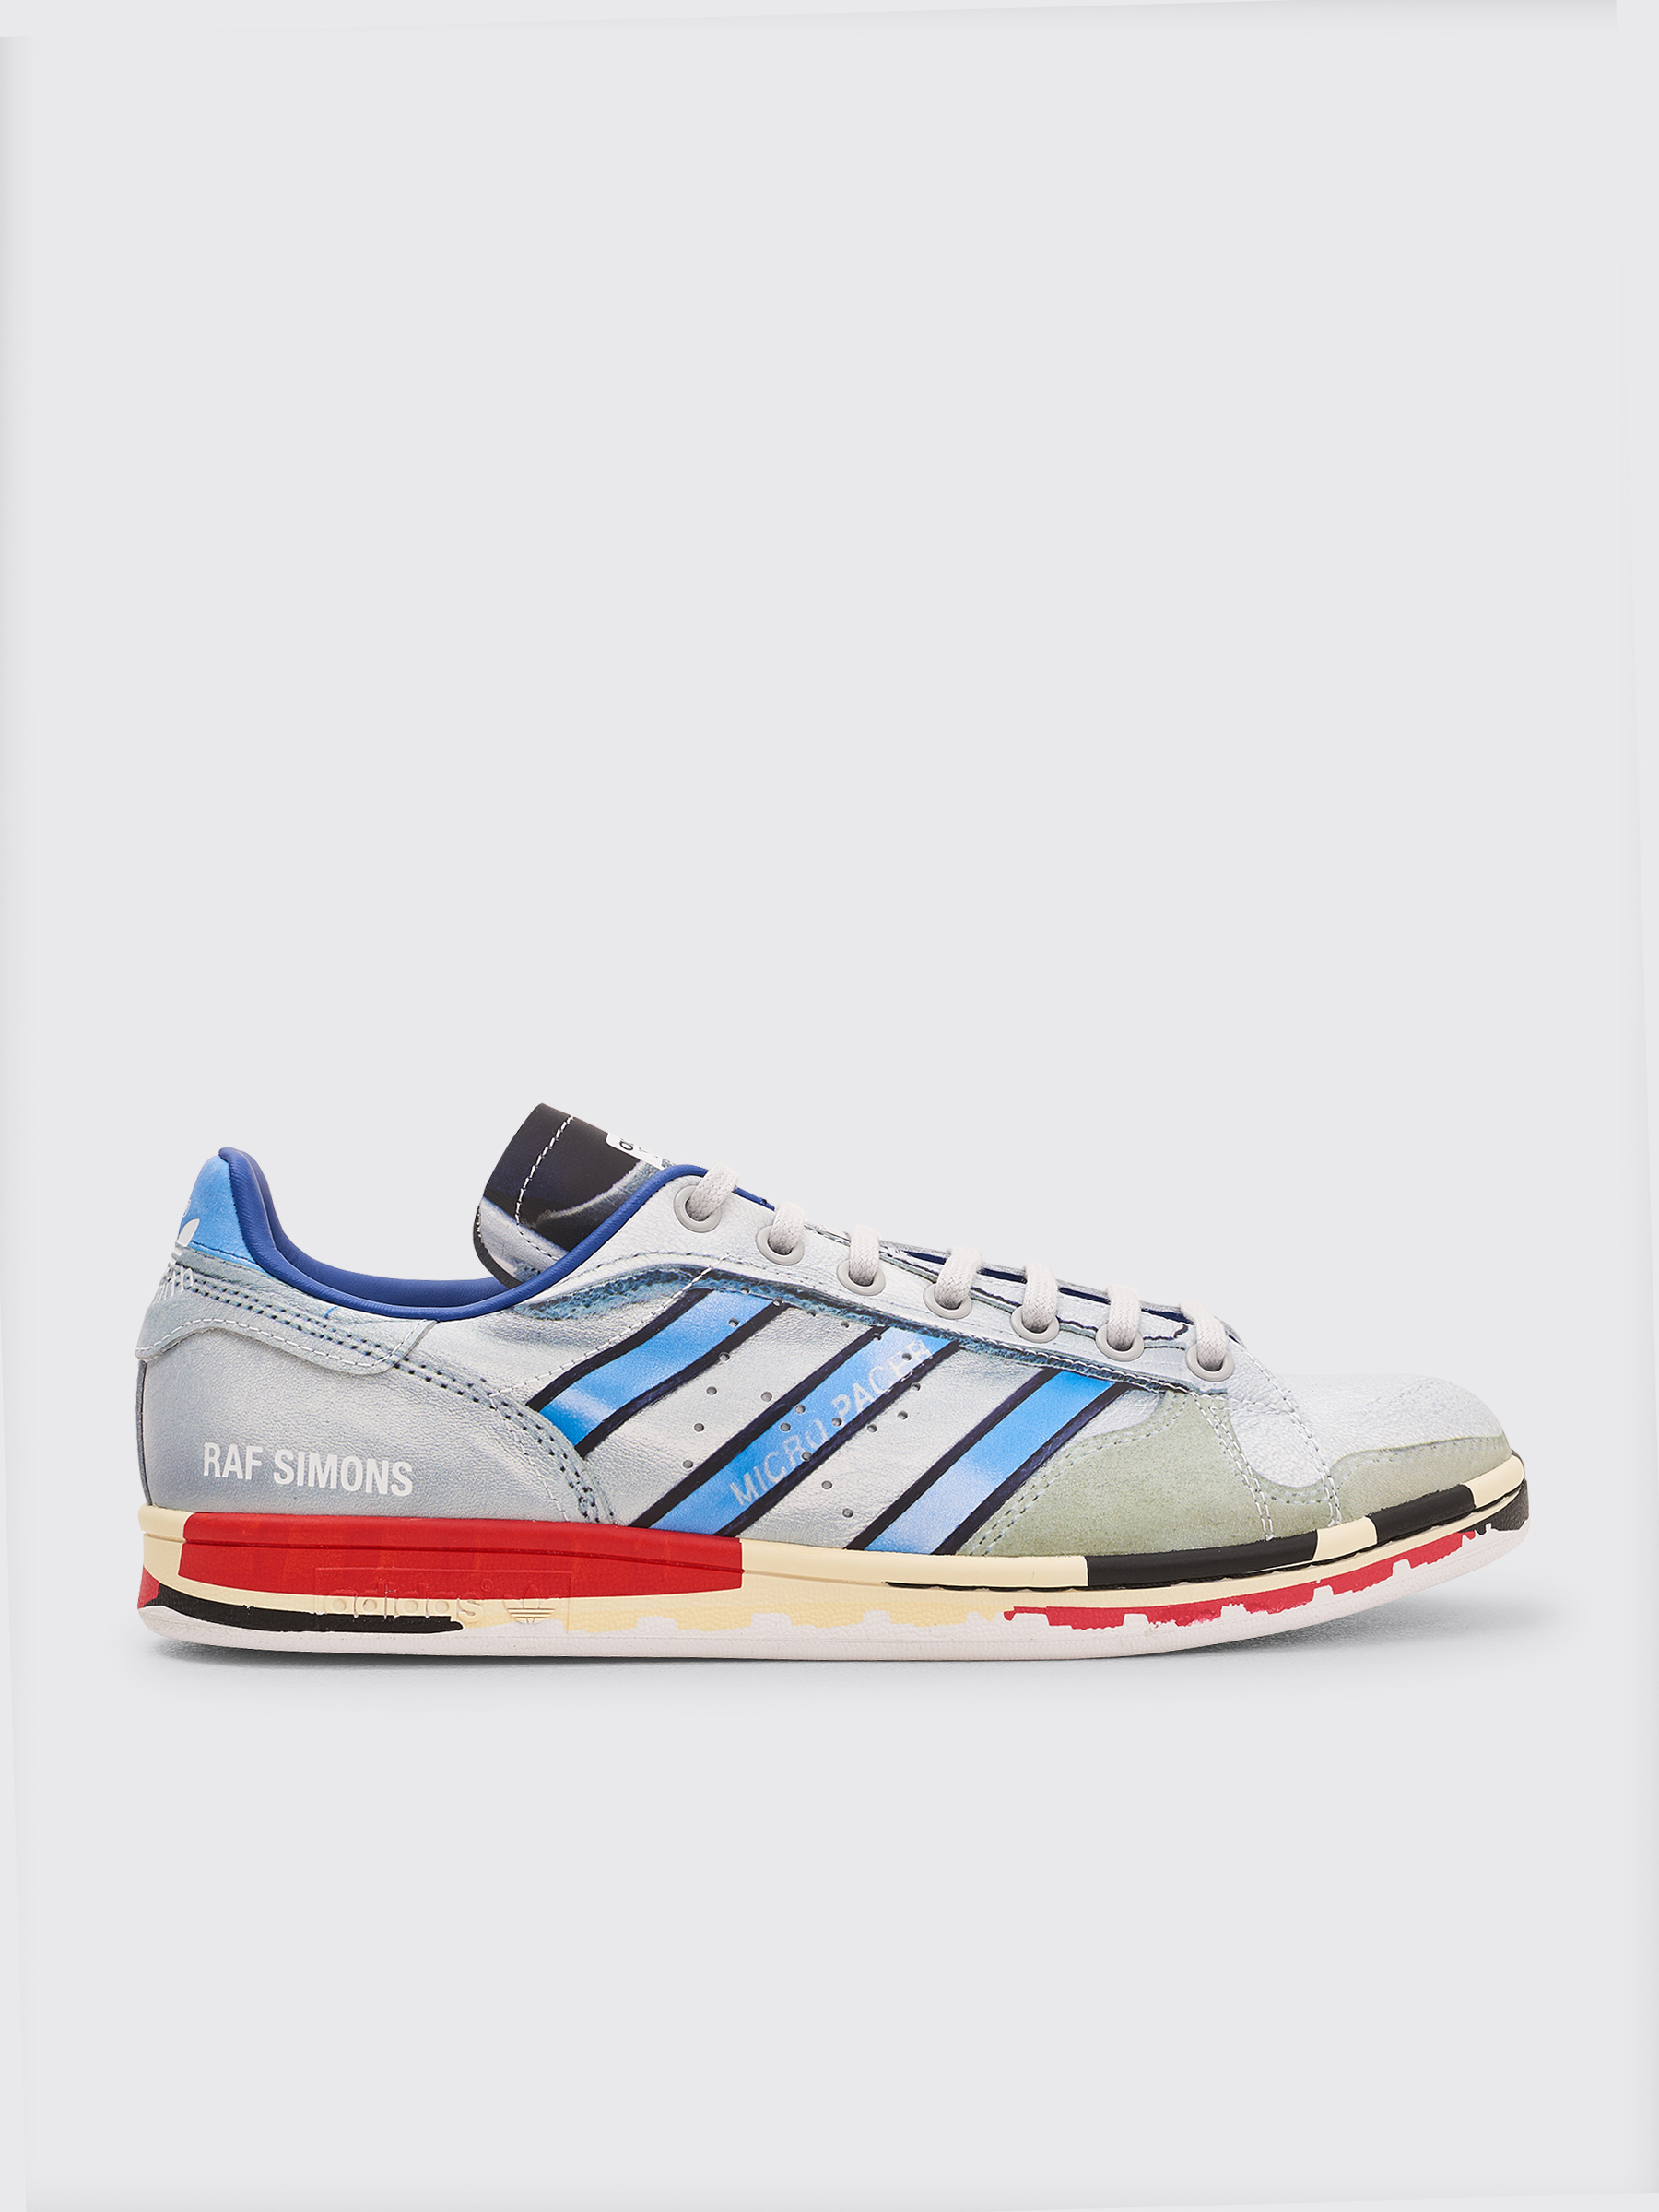 classic fit 3d8bc 1a51f Très Bien - adidas x Raf Simons Stan Smith Micropacer Print Silver   Red